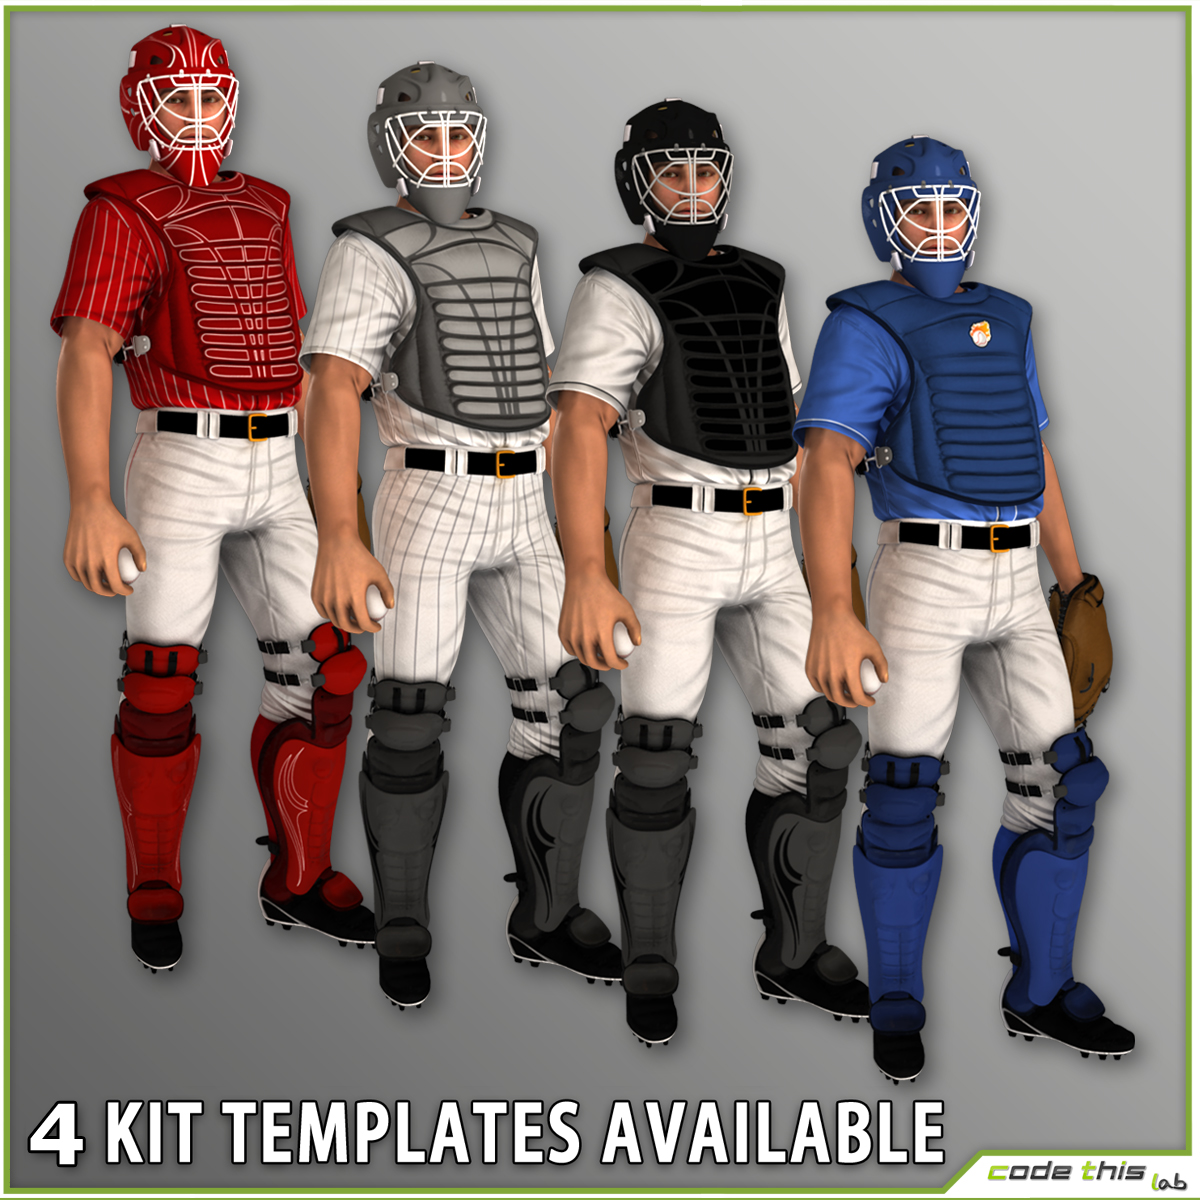 White Baseball Catcher CG 3D model